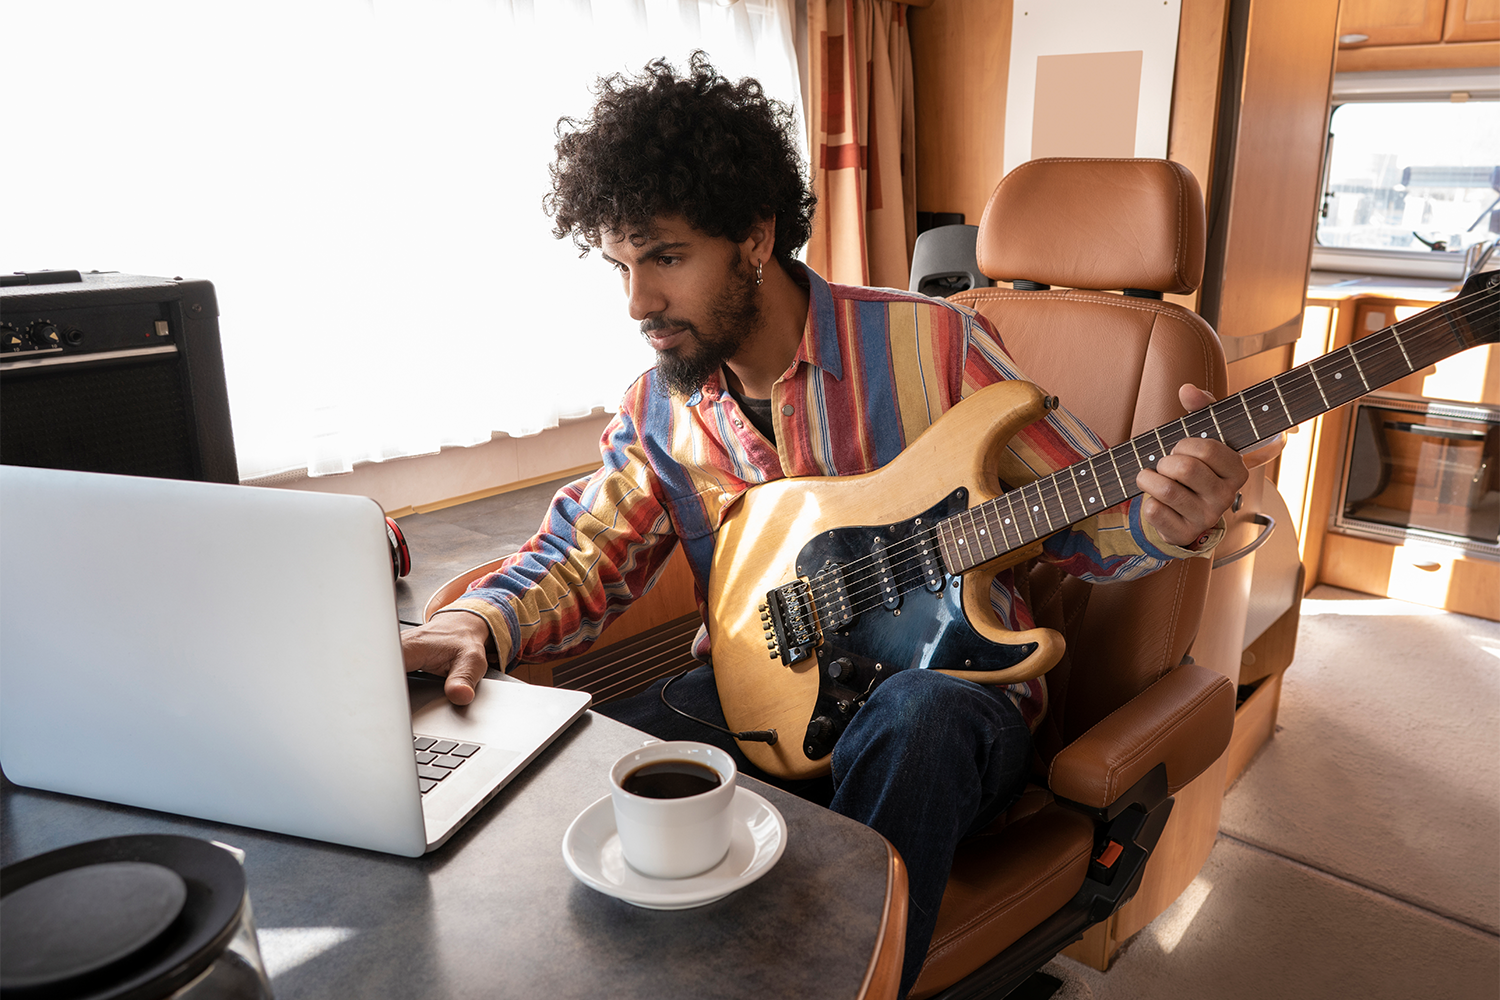 5 Tips For Staying Active In Your Songwriting Practice While Touring